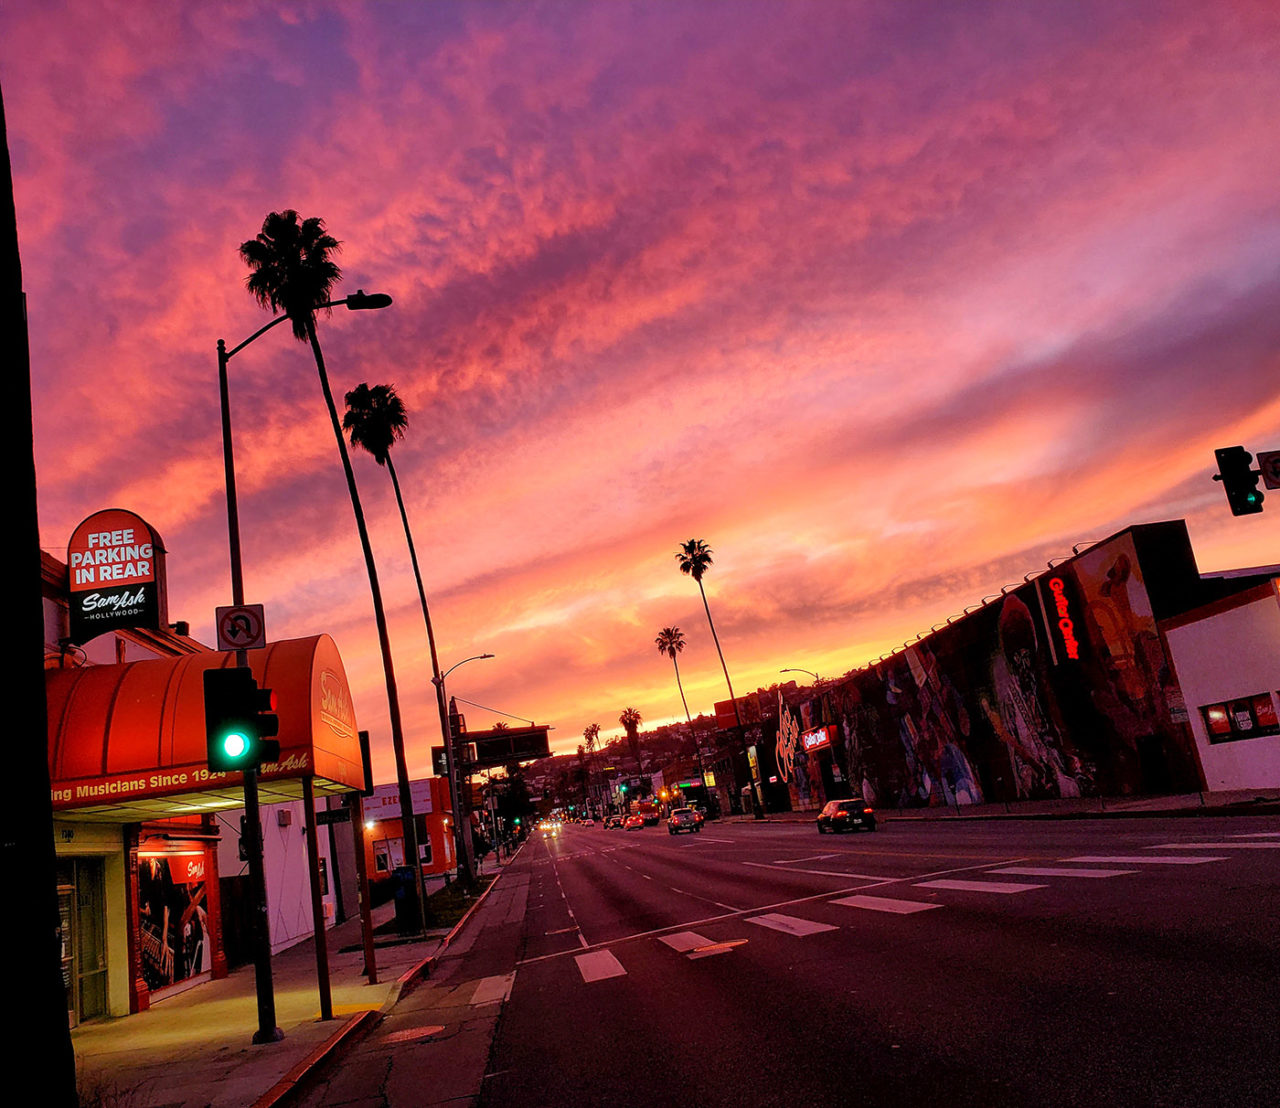 Colorful sunset of a nearly empty Sunset Blvd in Hollywood during Coronavirus stay at home order